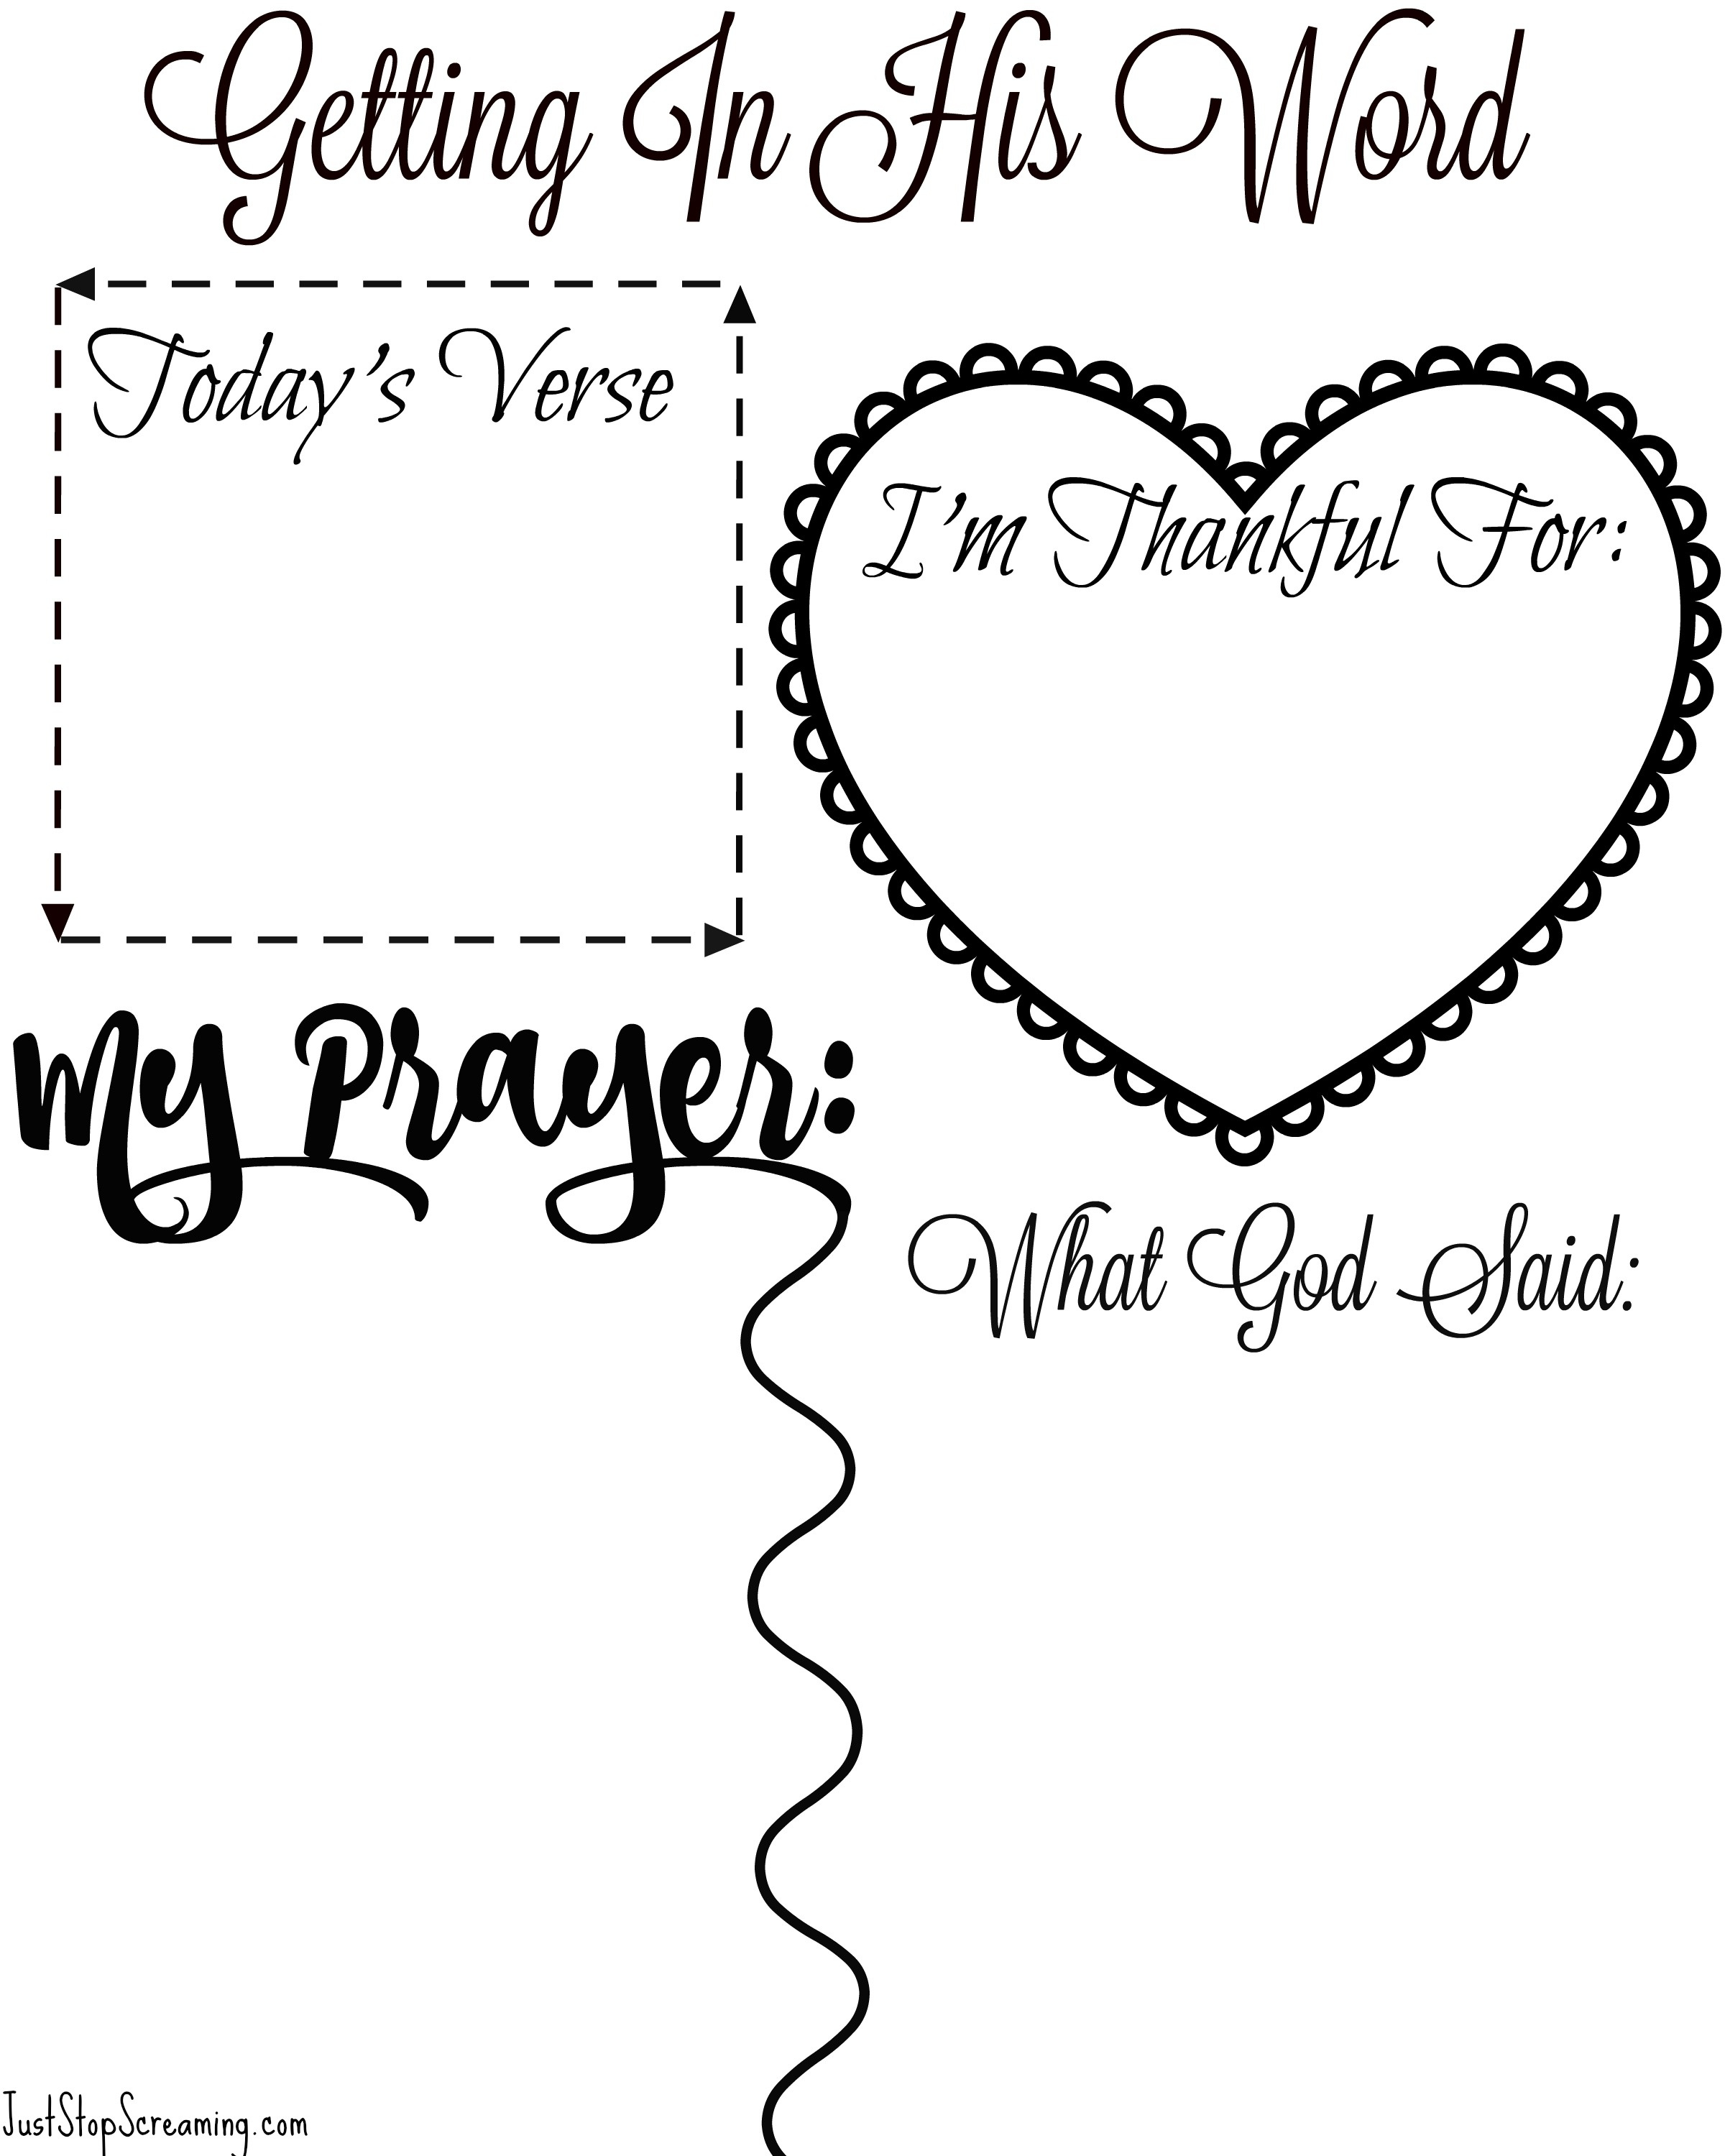 Free Bible Study Printable For Adults And Kids - Bible Lessons For Adults Free Printable